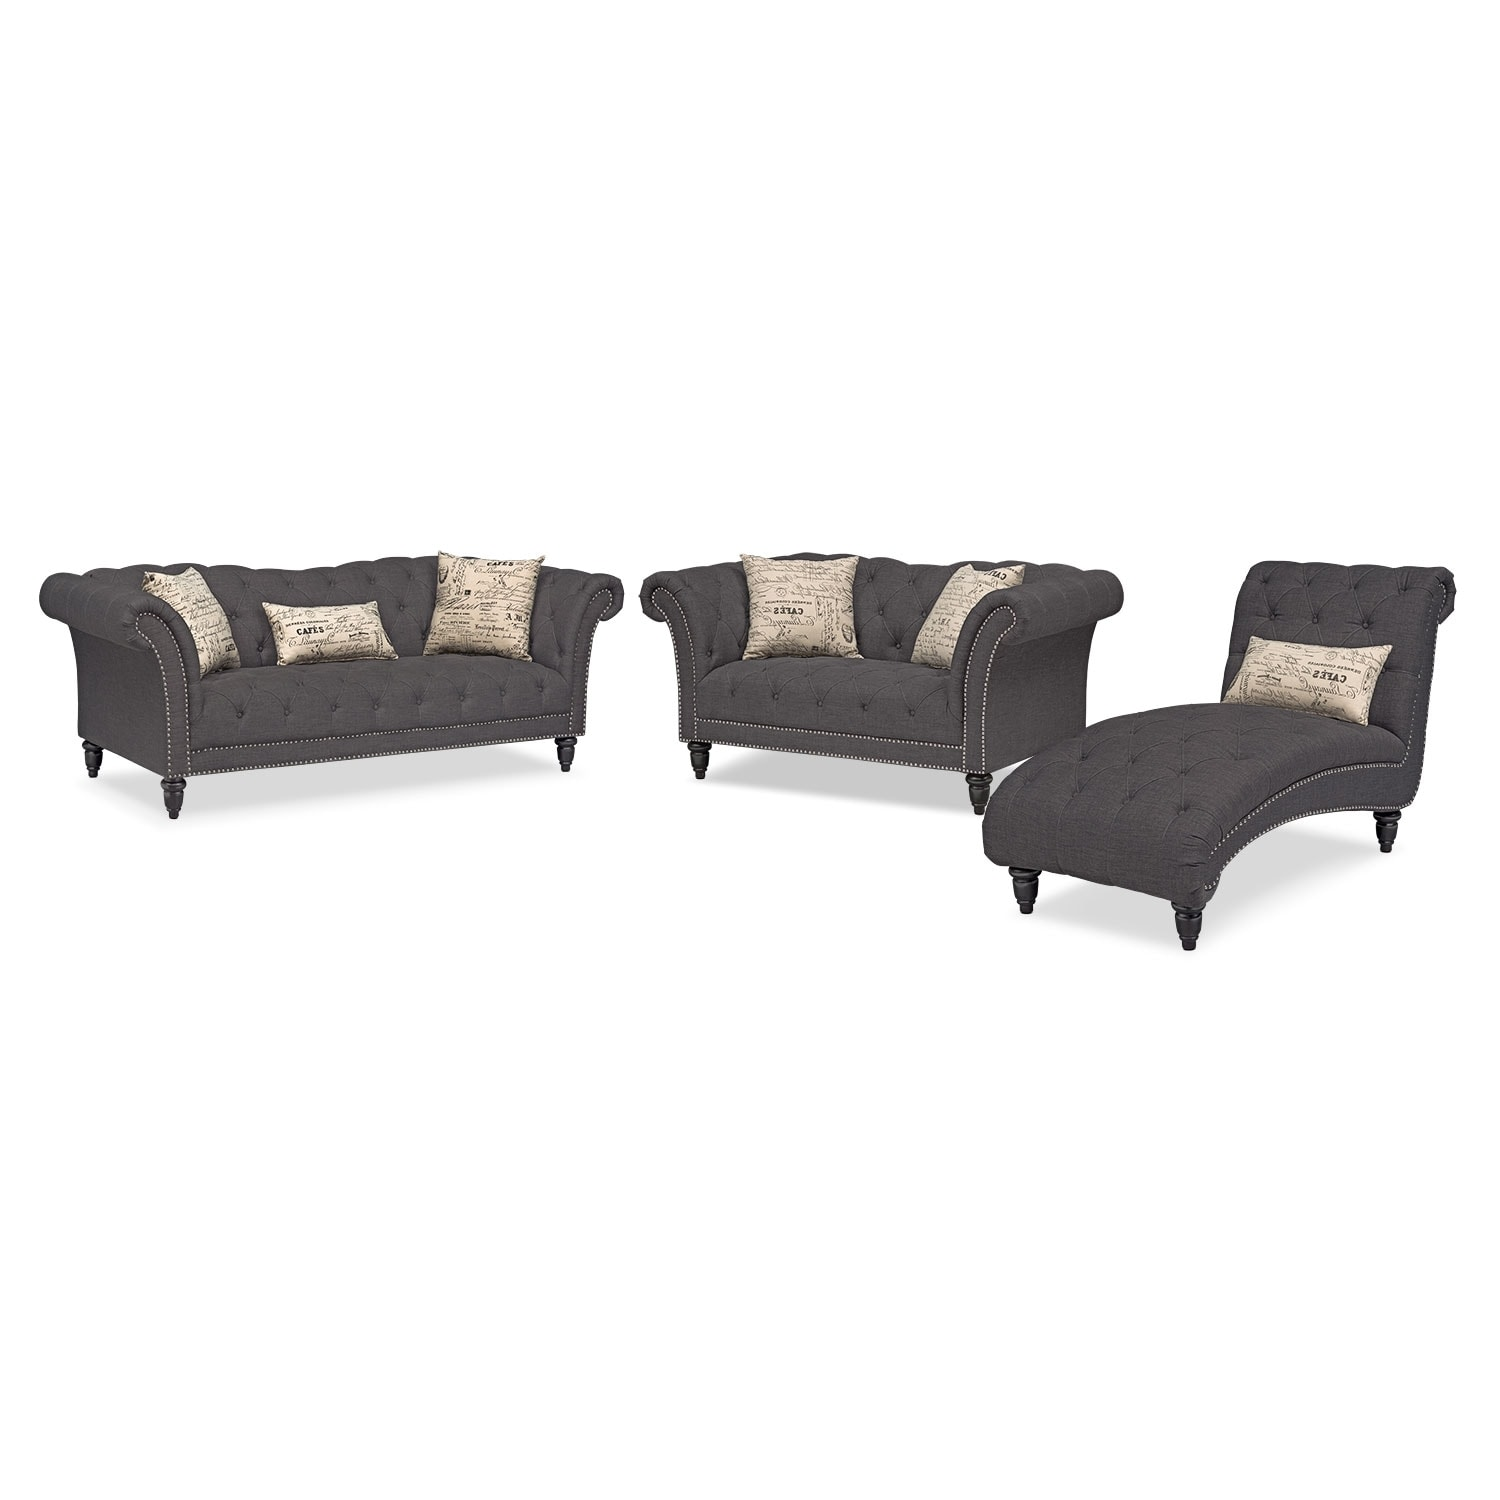 Living Room Furniture - Marisol Sofa, Loveseat and Chaise